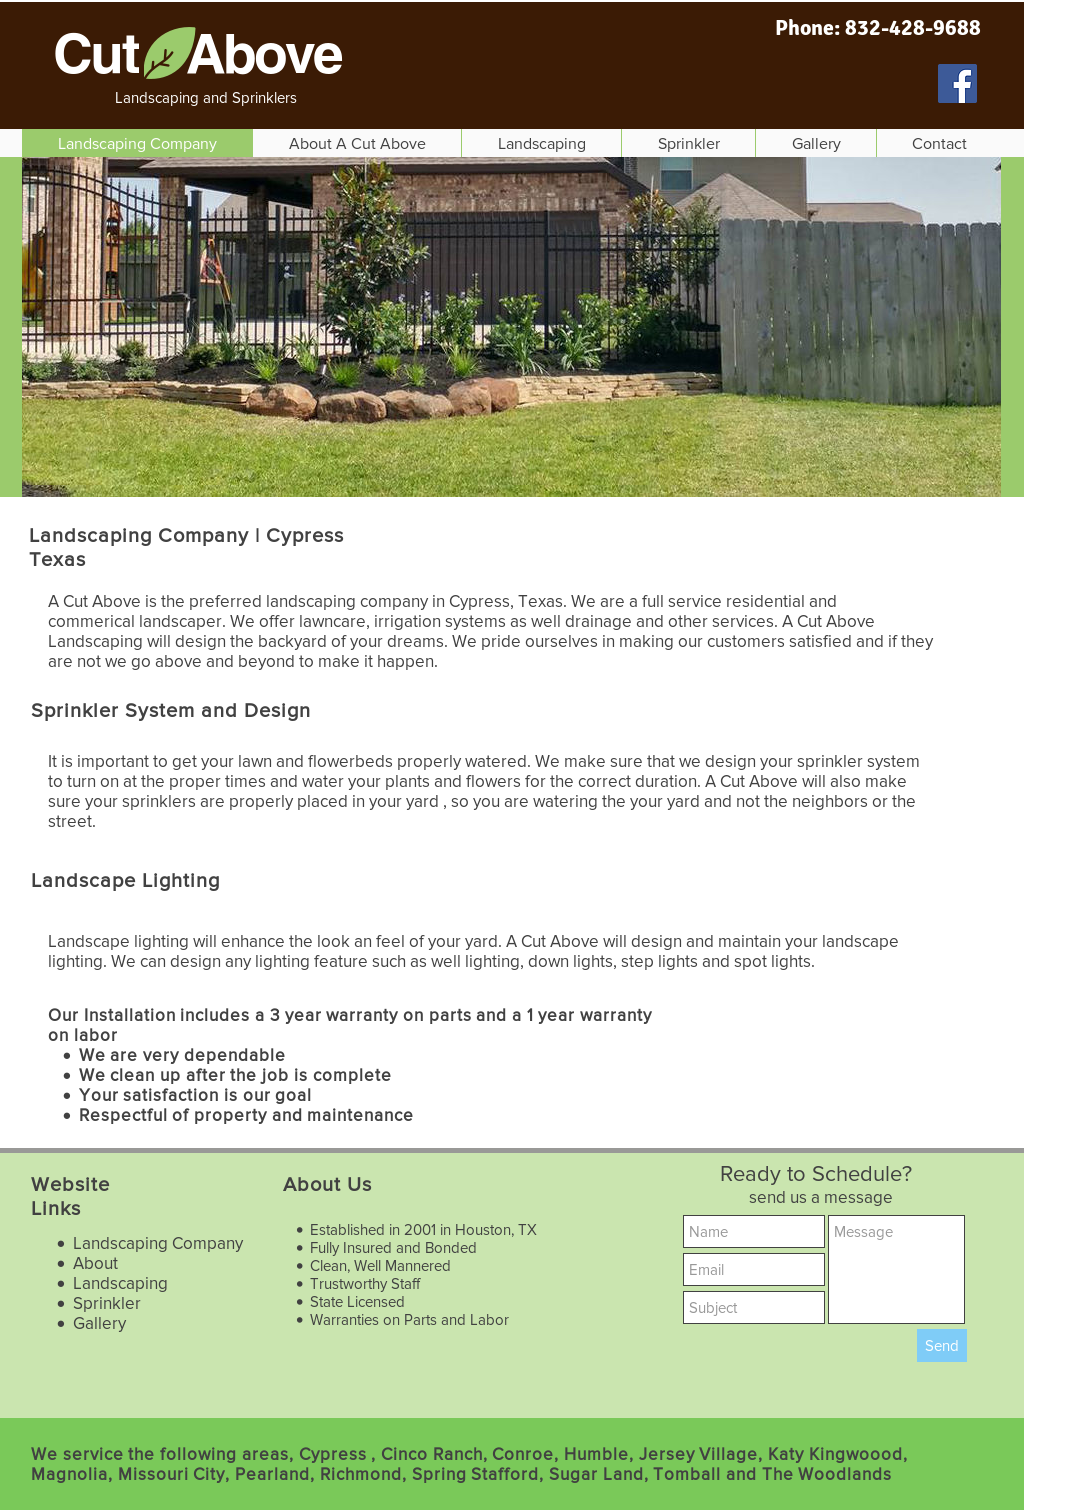 Cut Above Landscaping And Irrigation website history - Cut Above Landscaping And Irrigation Competitors, Revenue And